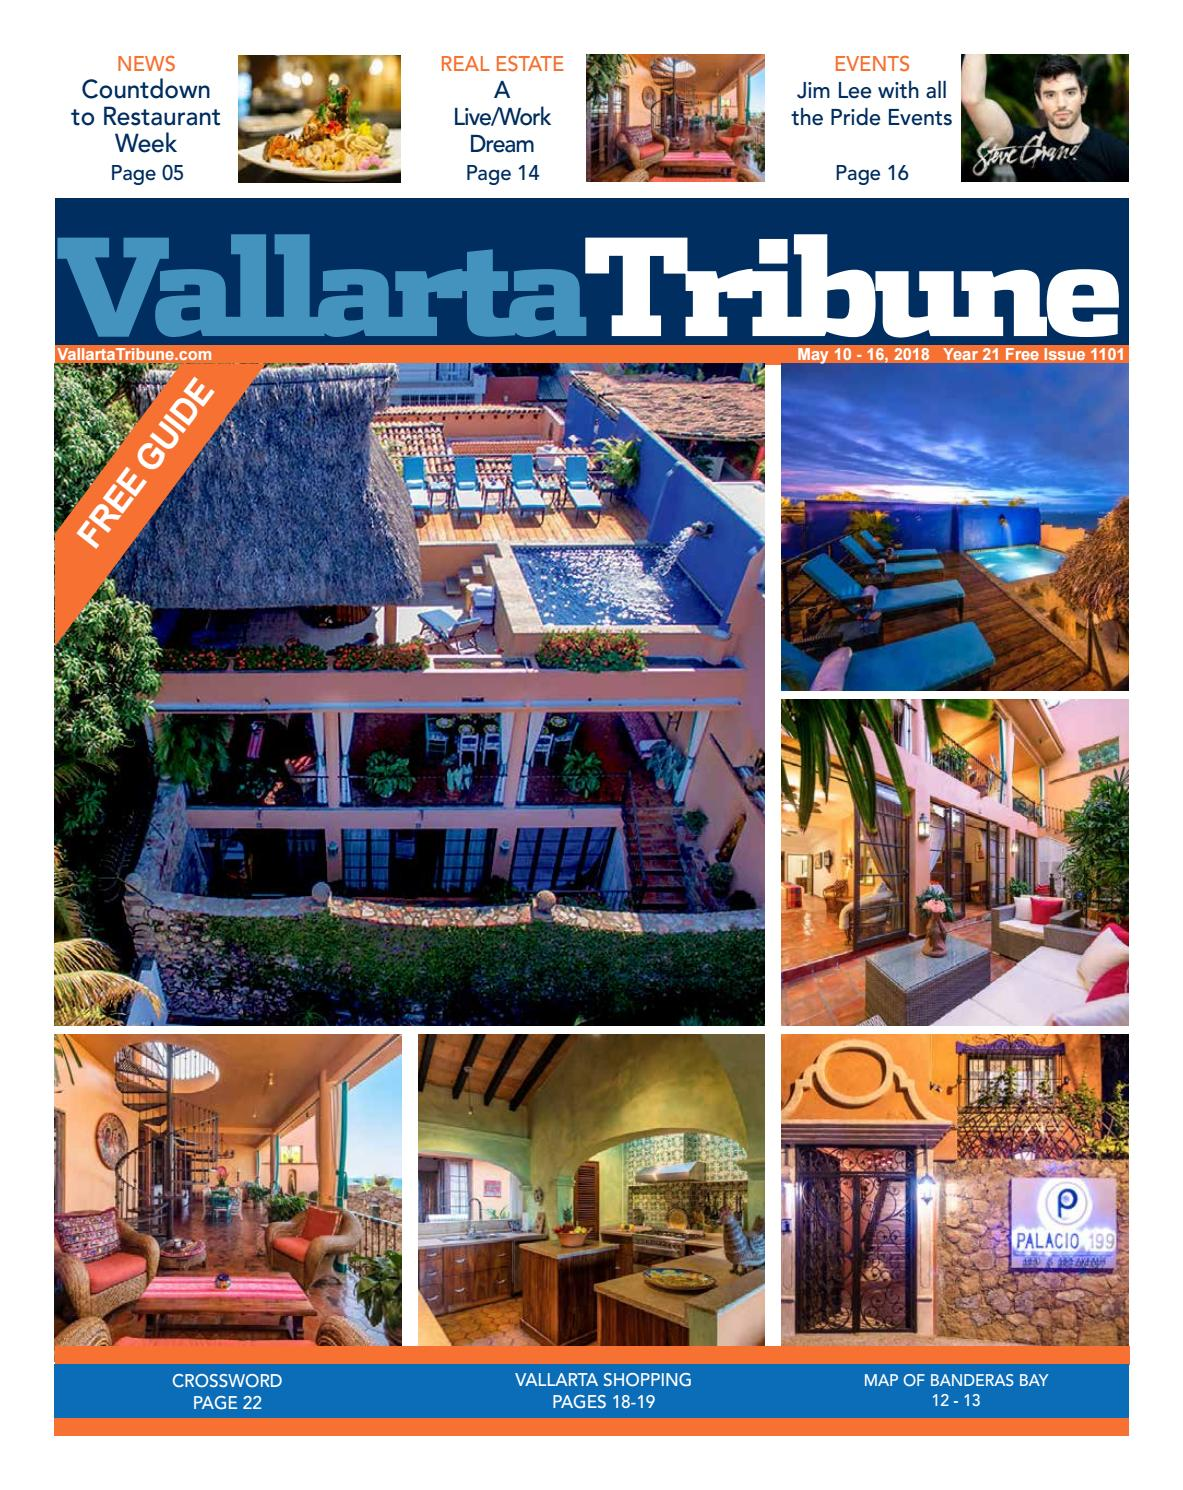 iSSUE 1101 May 10 16, 2018 by Vallarta Tribune issuu